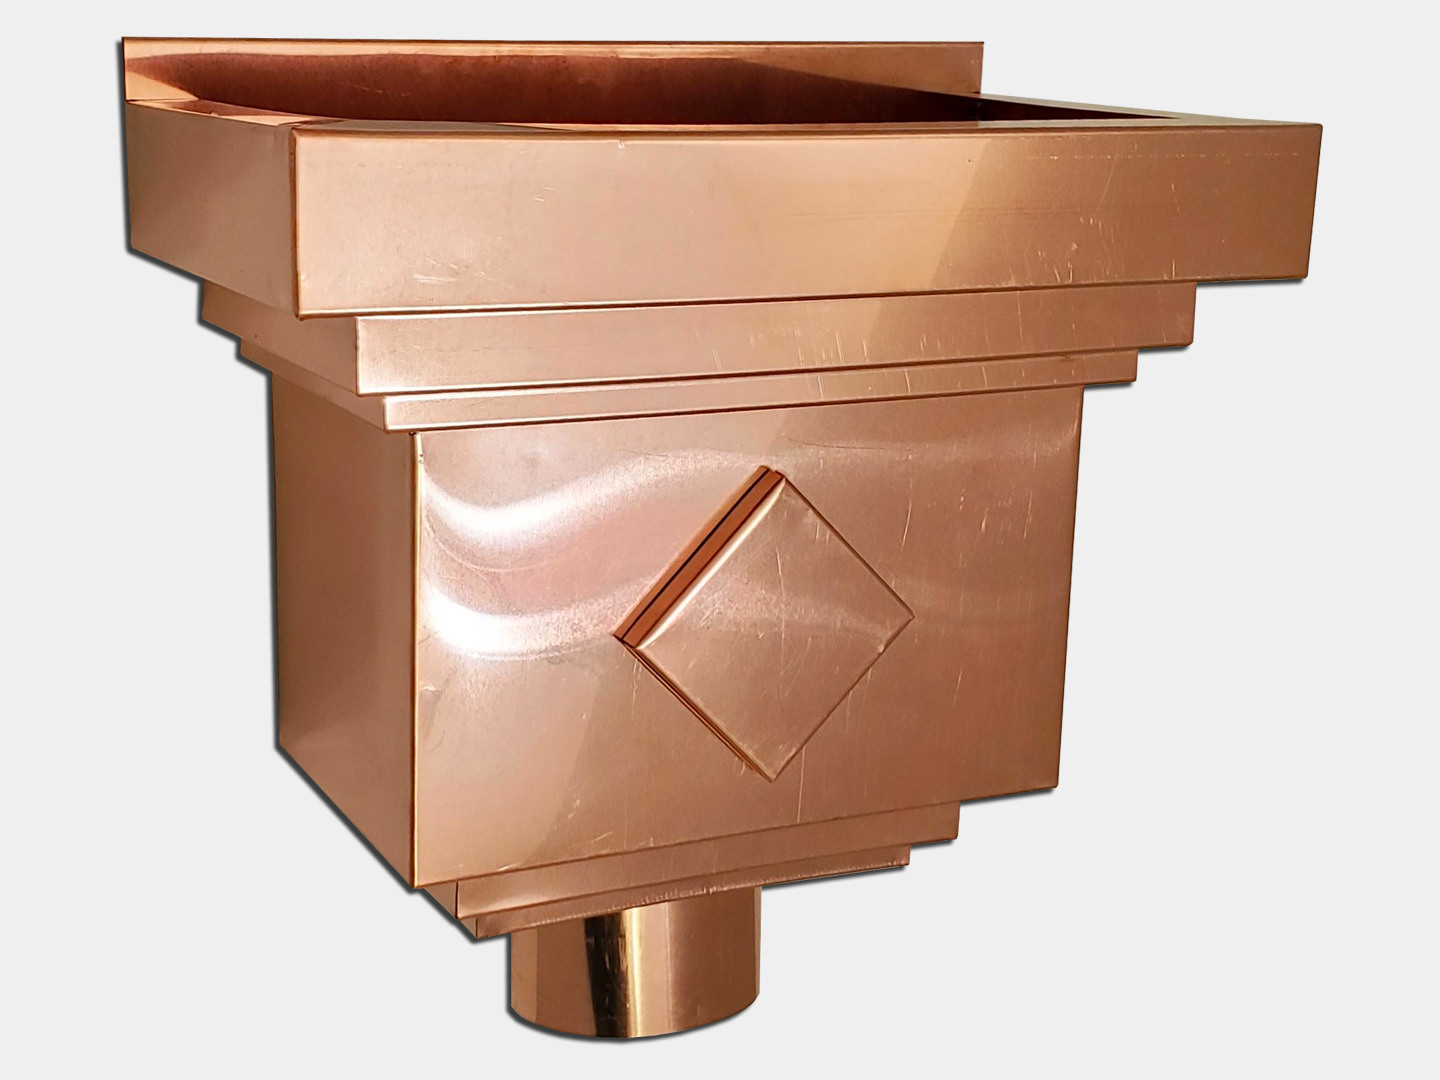 Traditional Koeleveld Conductor Head in Copper